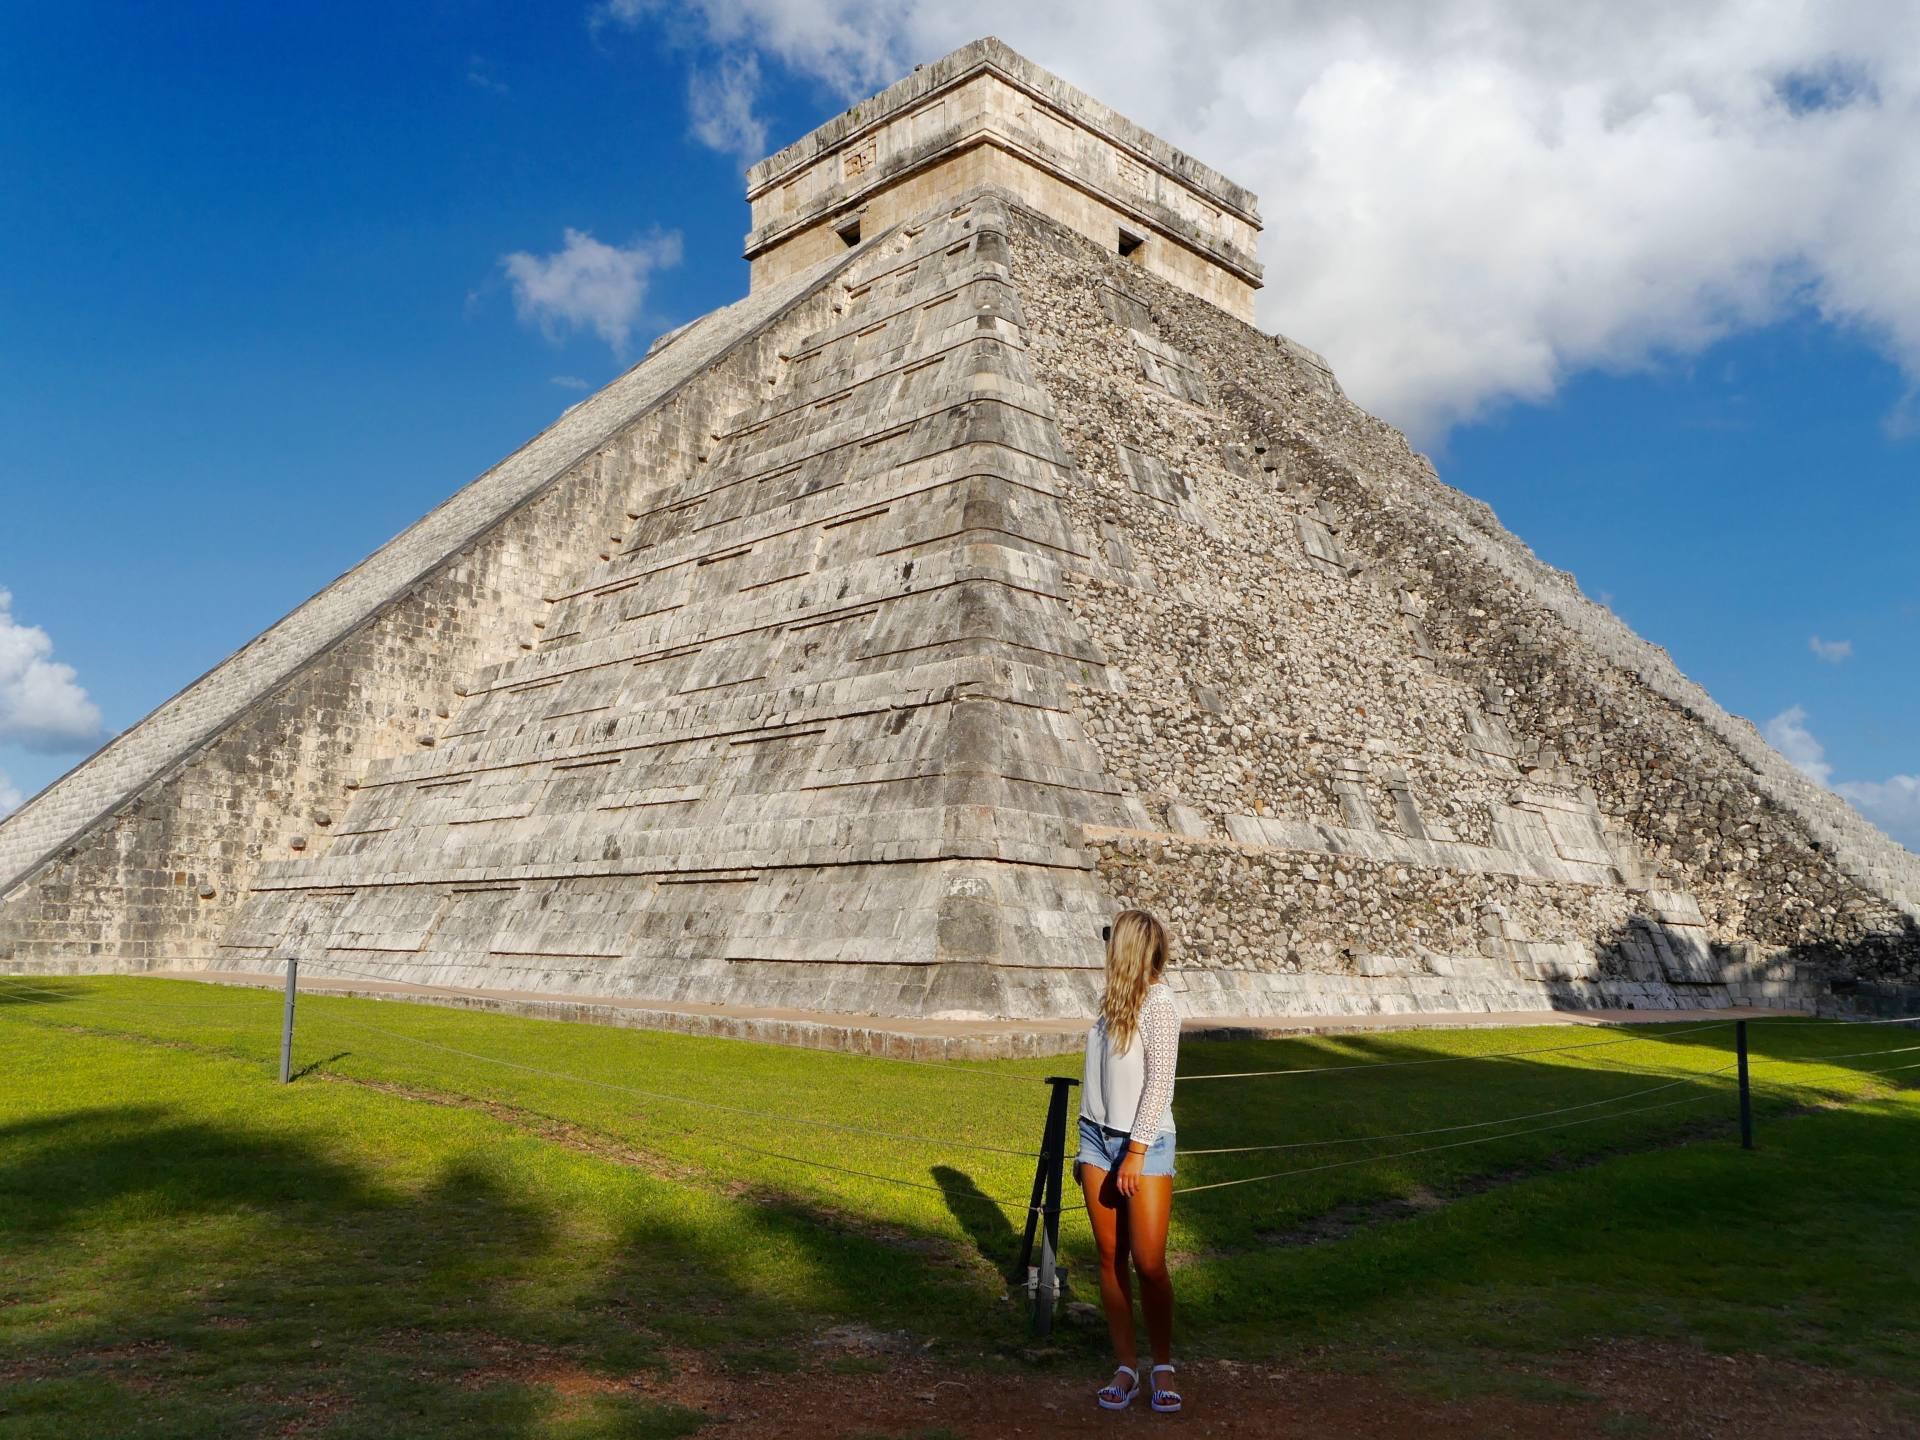 What to Expect when Visiting Chichen Itza